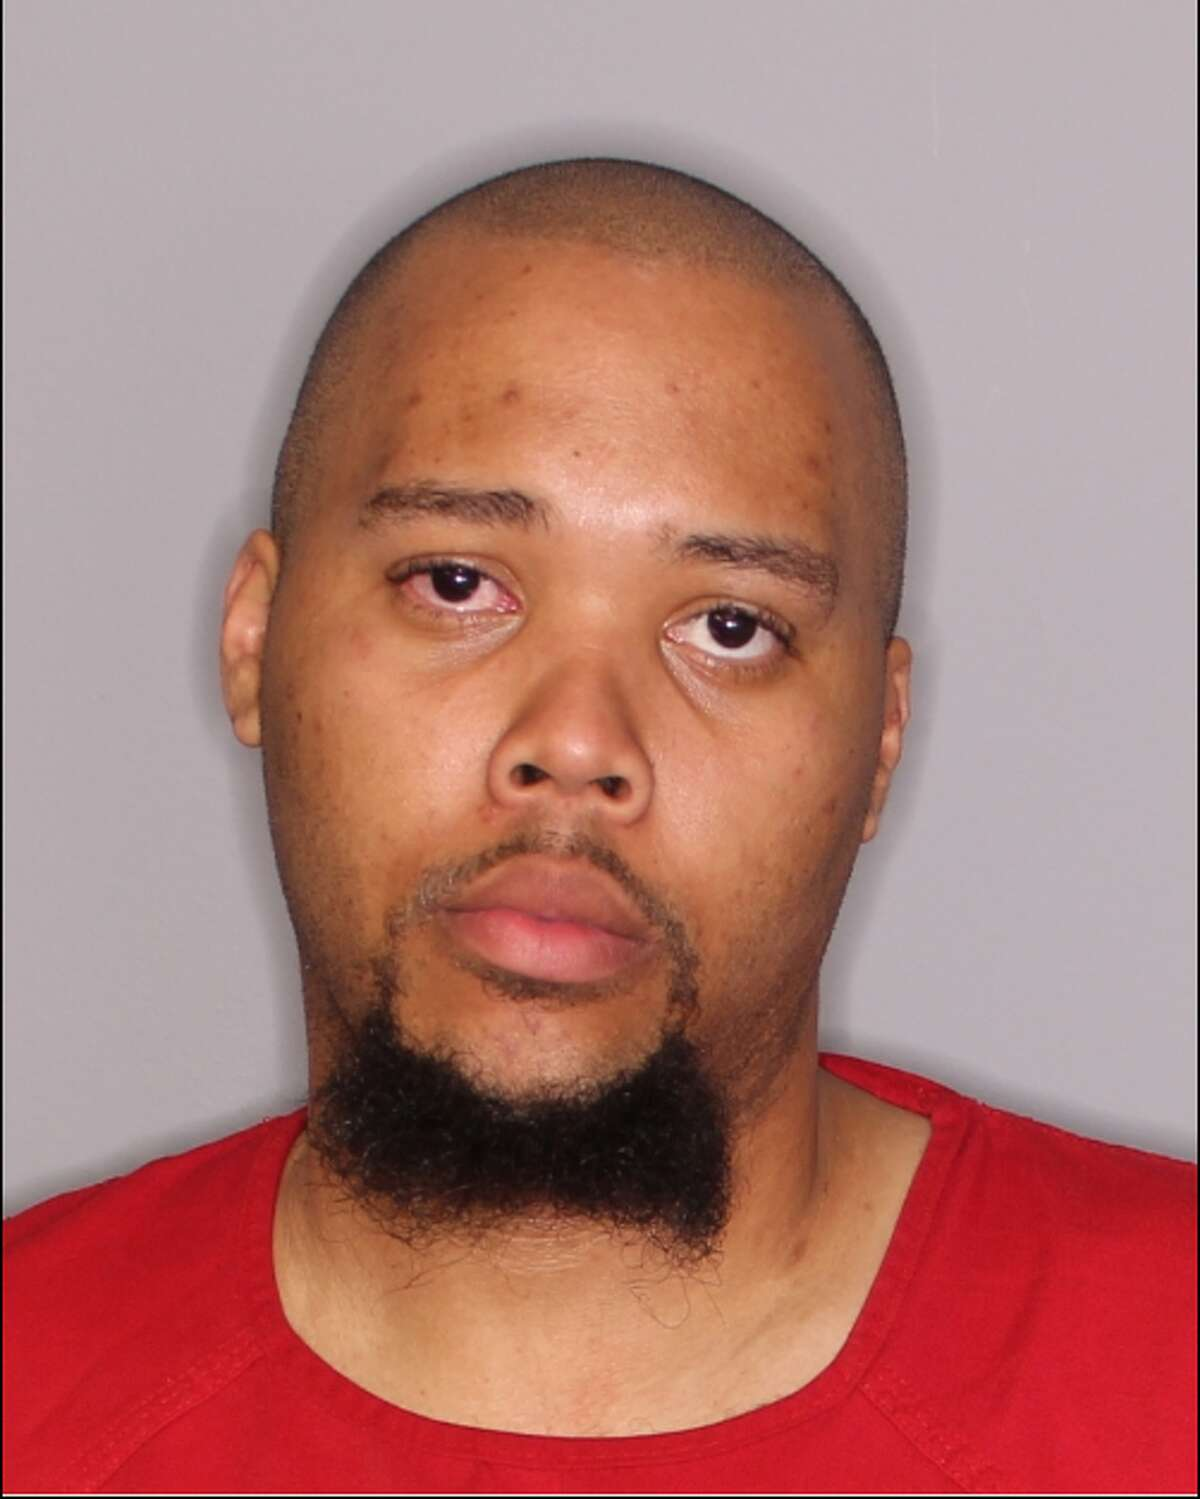 The King County Sheriff's Office is looking for additional victims who may have been assaulted by 25-year-old Tedgy Wright of Skyway. He's charged with meeting three different women online and assaulting or raping them.